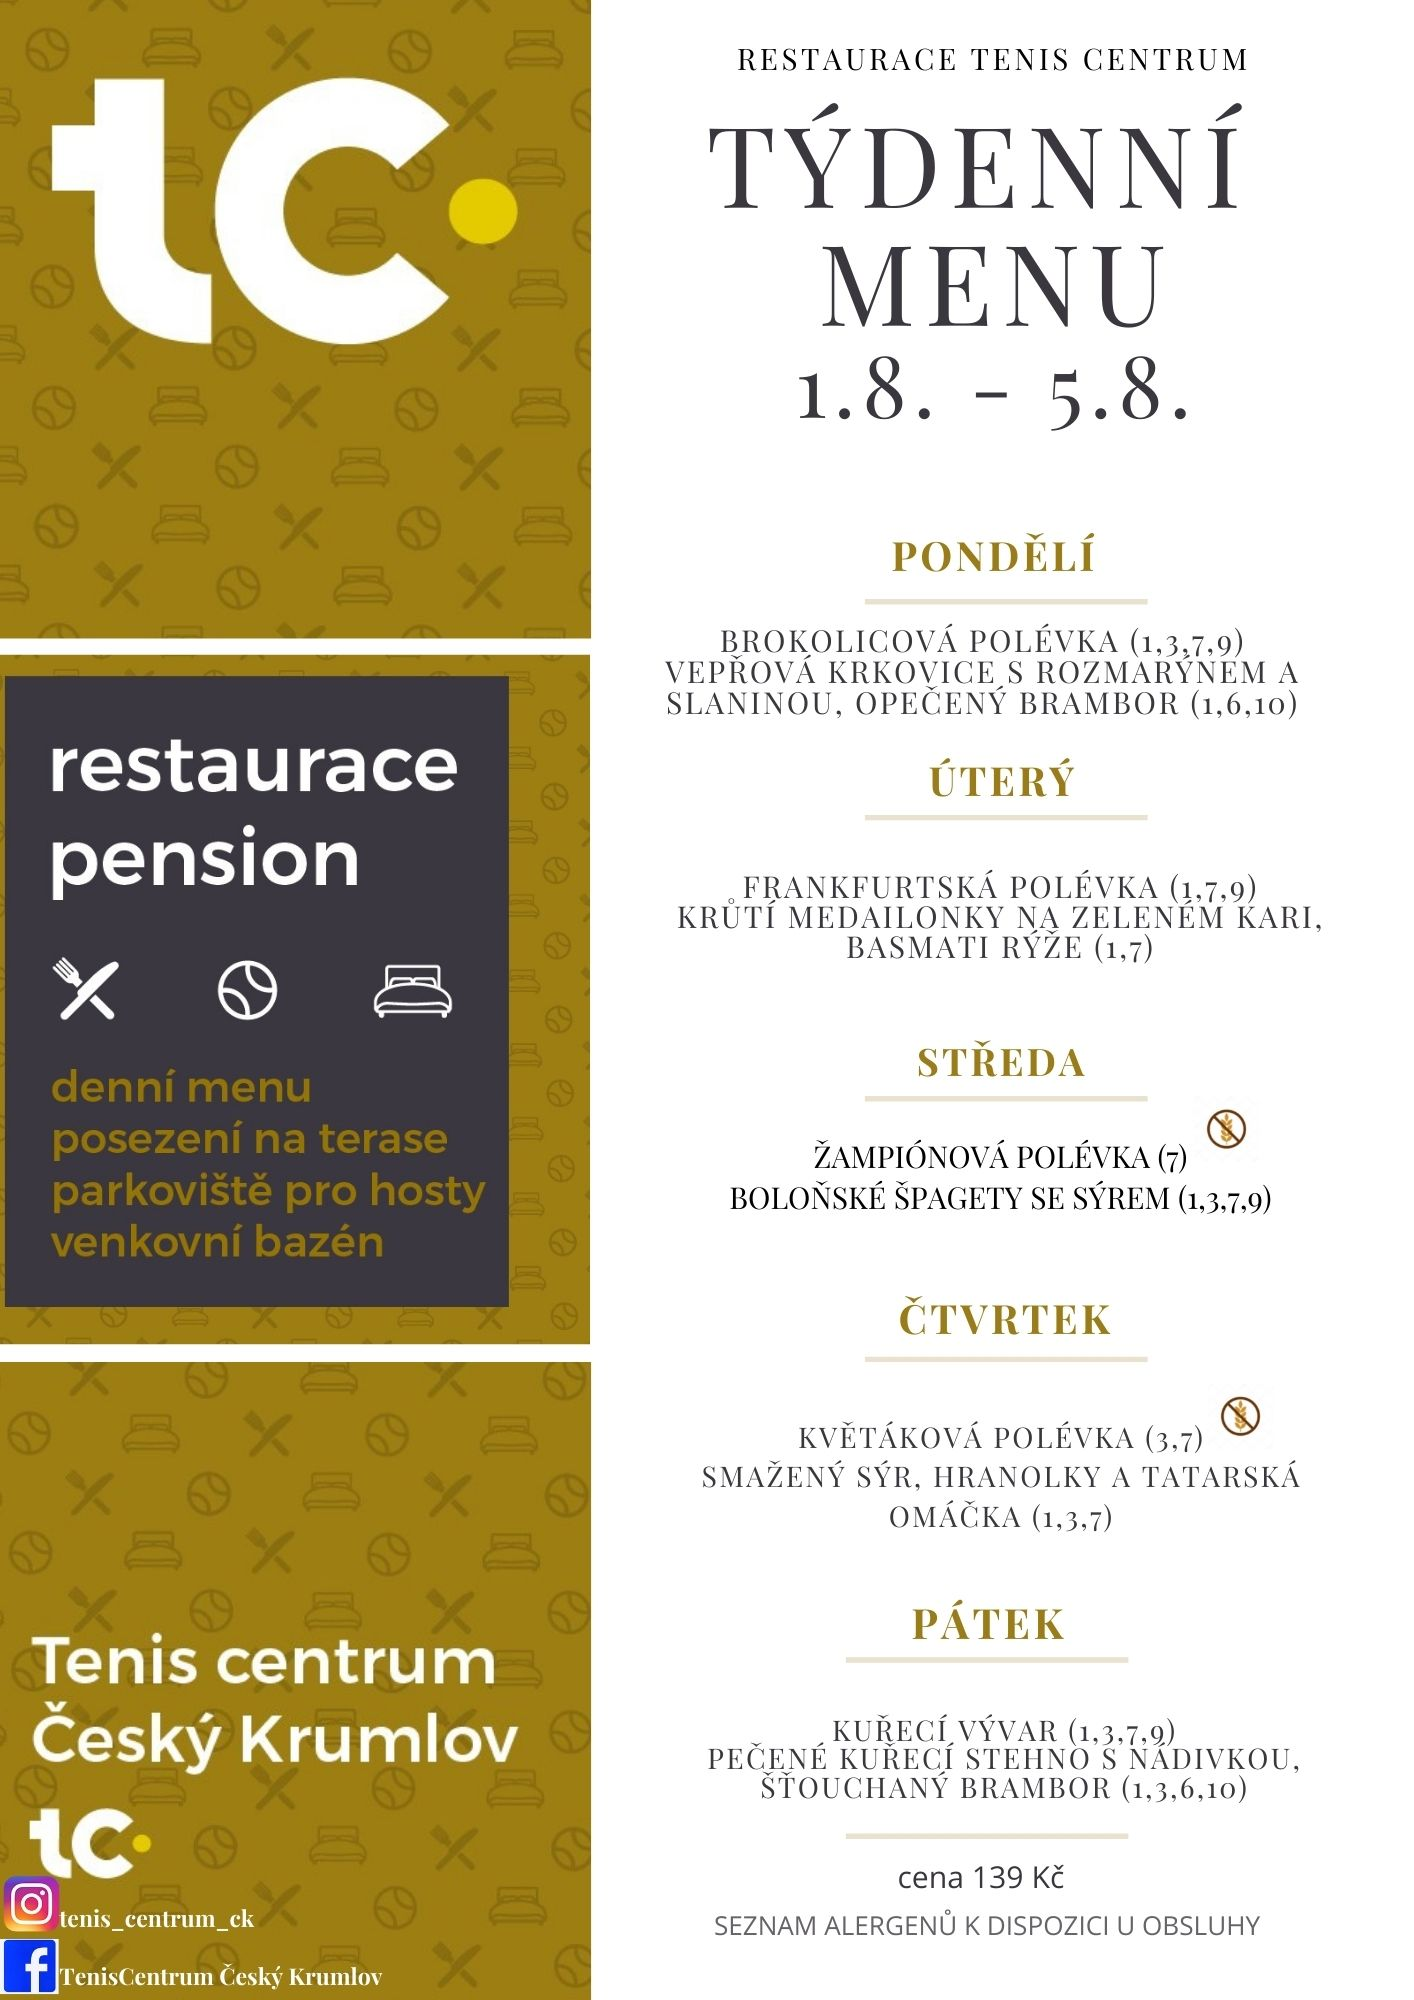 Týdenní menu Restaurace TenisCentrum